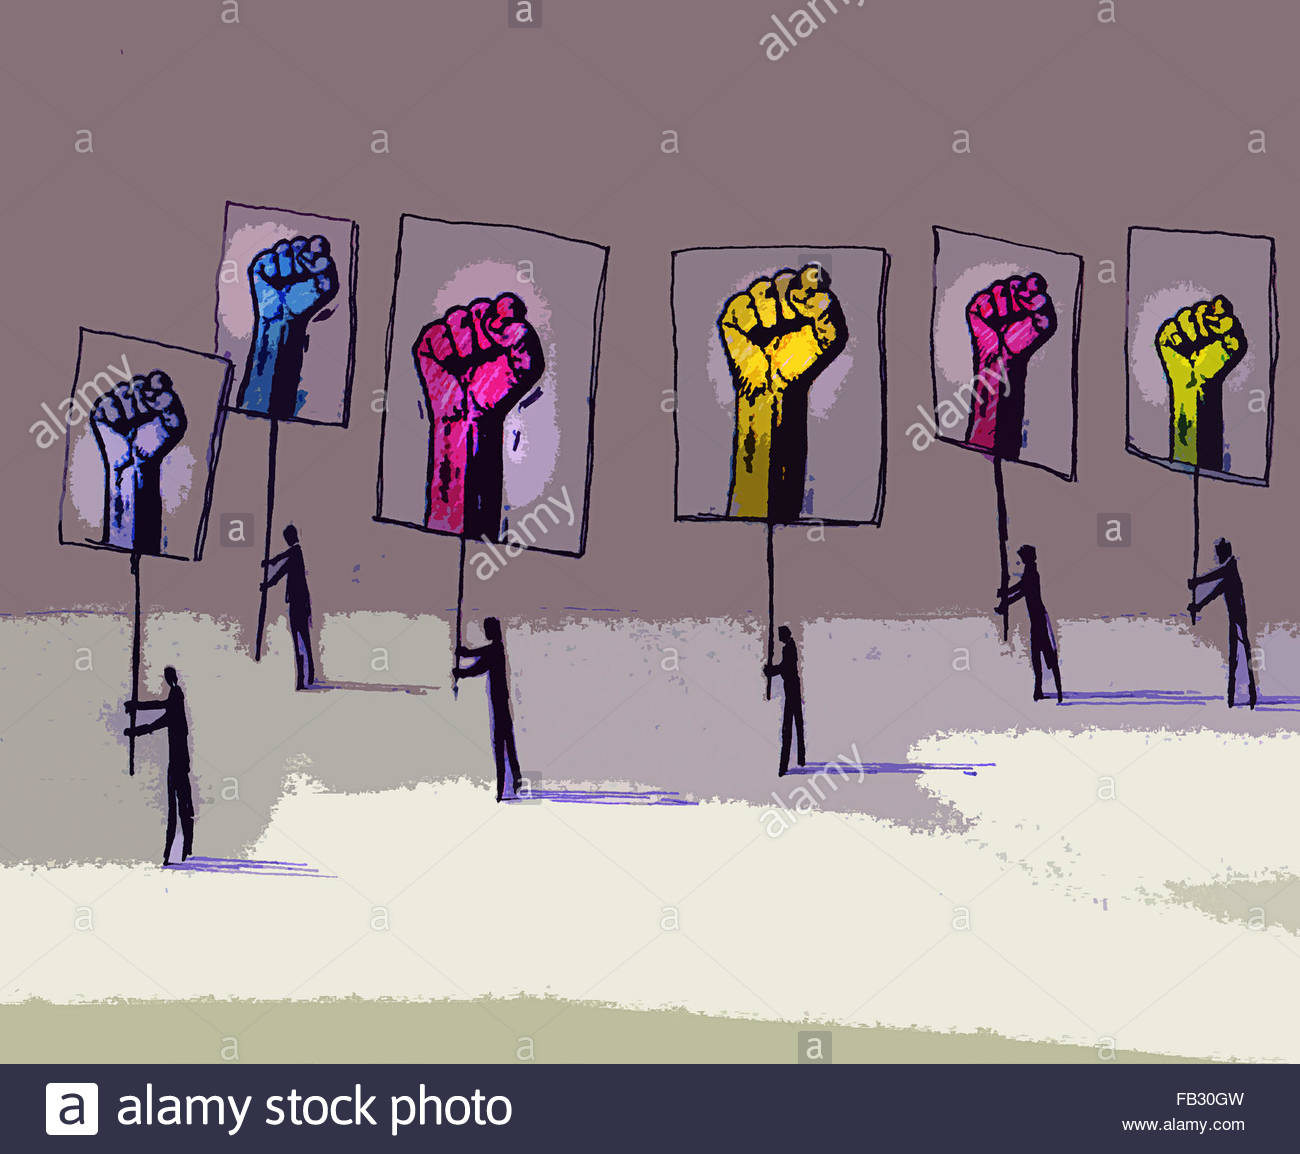 Protesters carrying placards of clenched fists - Stock Image